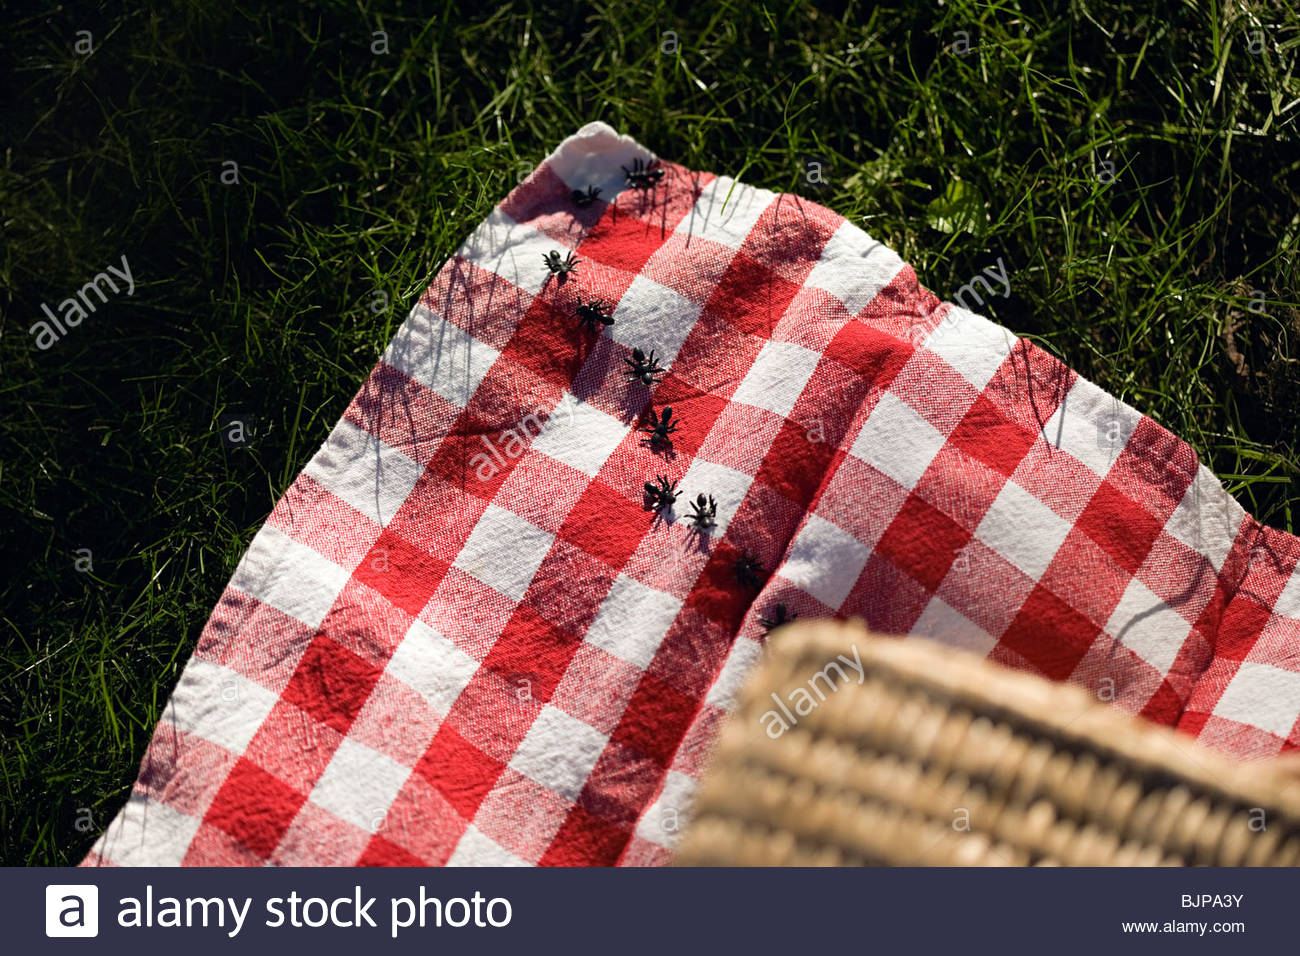 Ants on a picnic blanket Stock Photo, Royalty Free Image ...